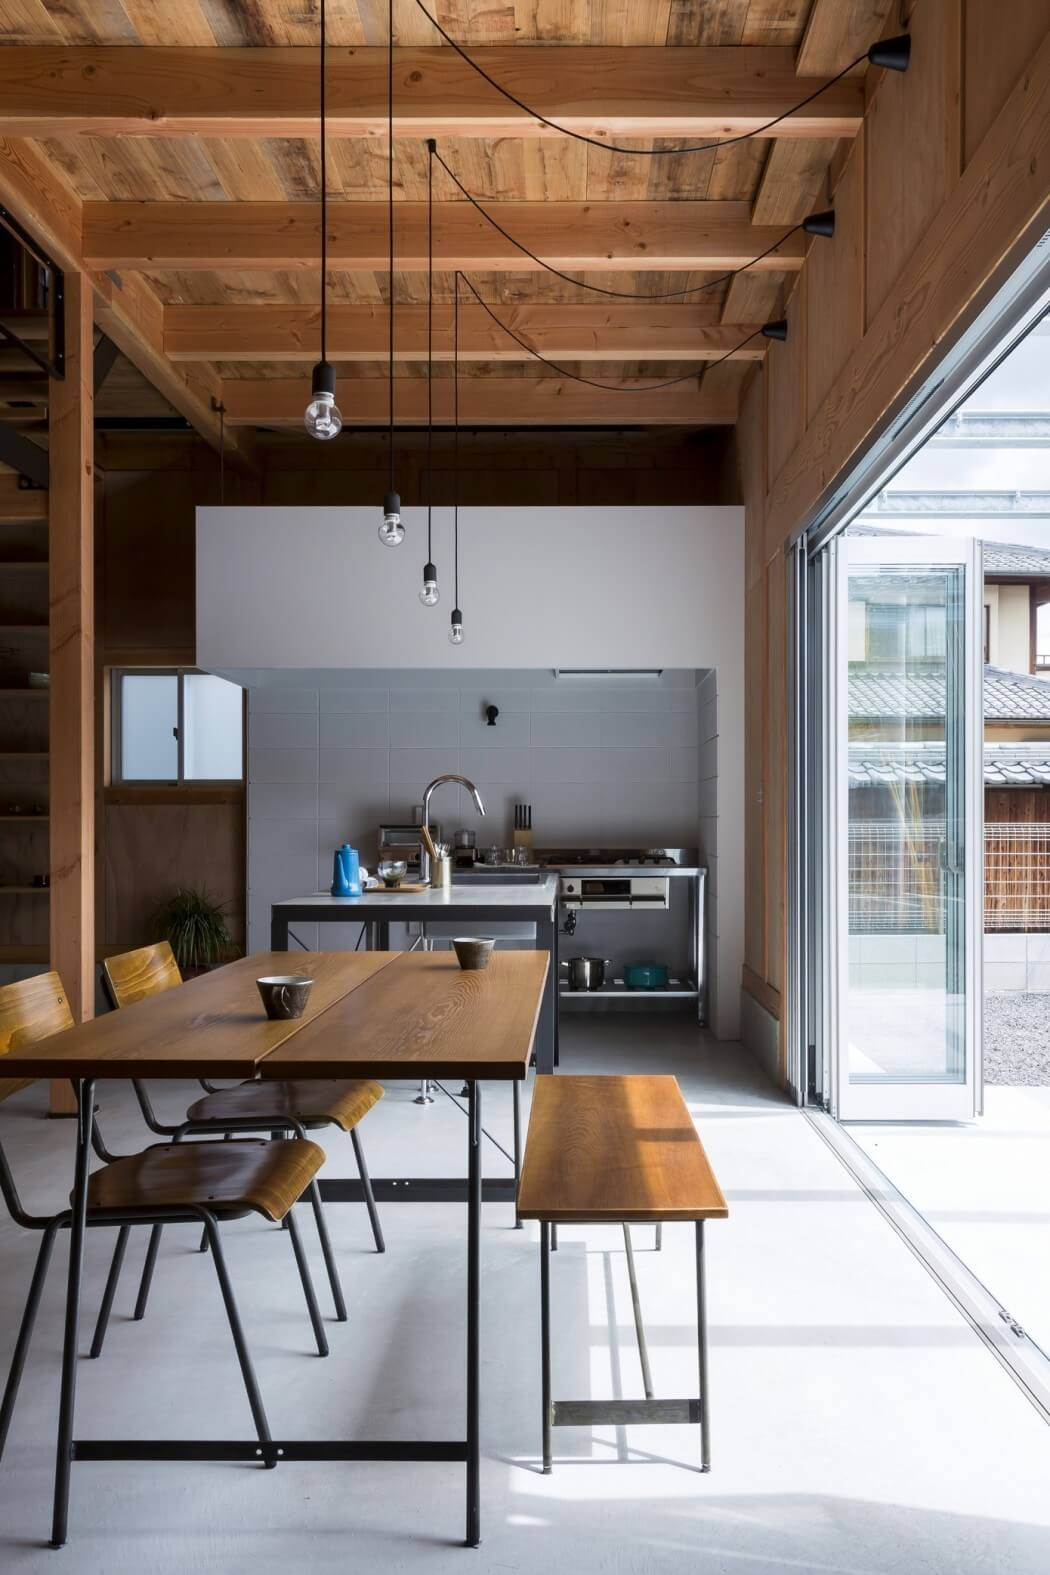 the design office. Found In Ishibe, Japan, This Residential Property Was Designed By Alts Design Office. The Office